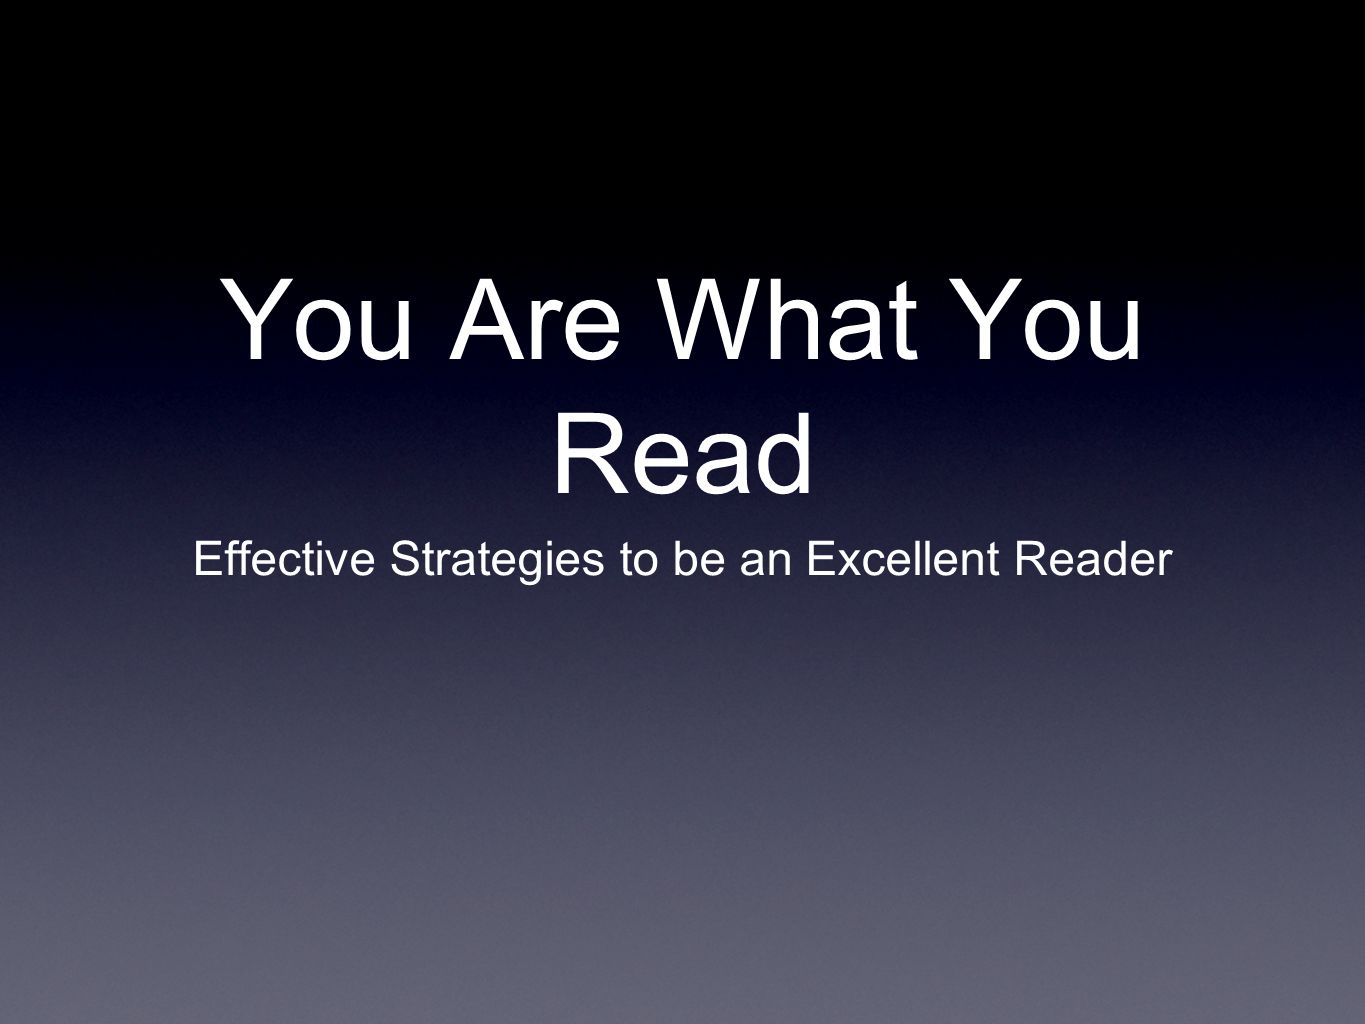 You Are What You Read Effective Strategies to be an Excellent Reader